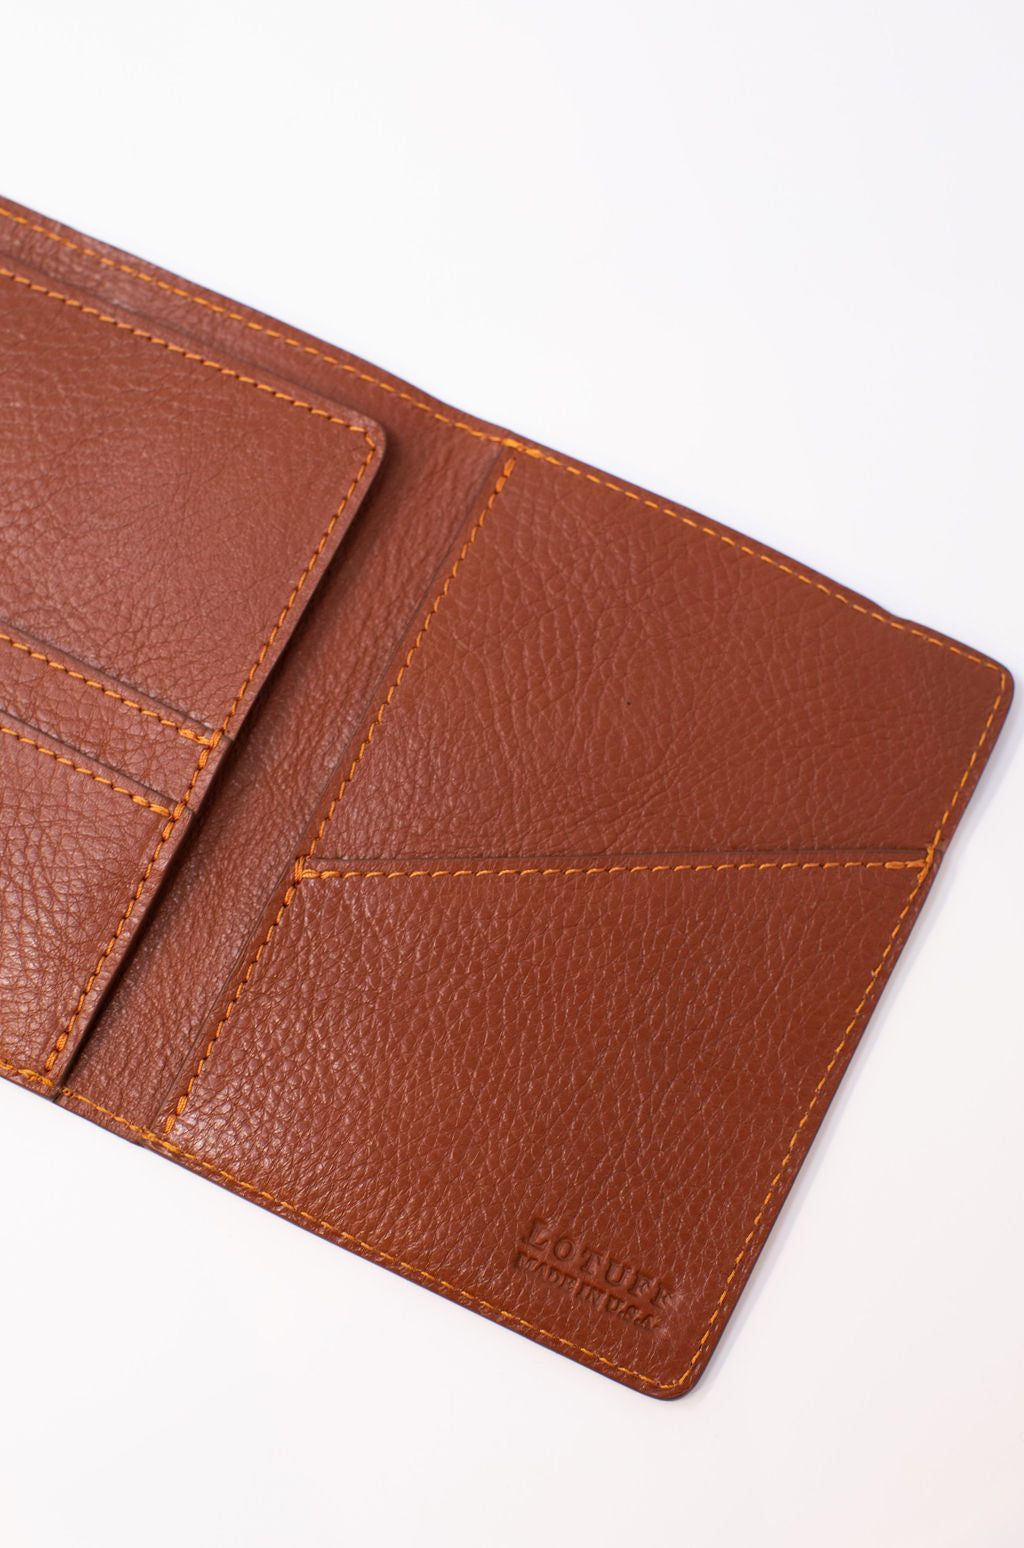 Lotuff-Leather-Passport-Wallet-Saddle